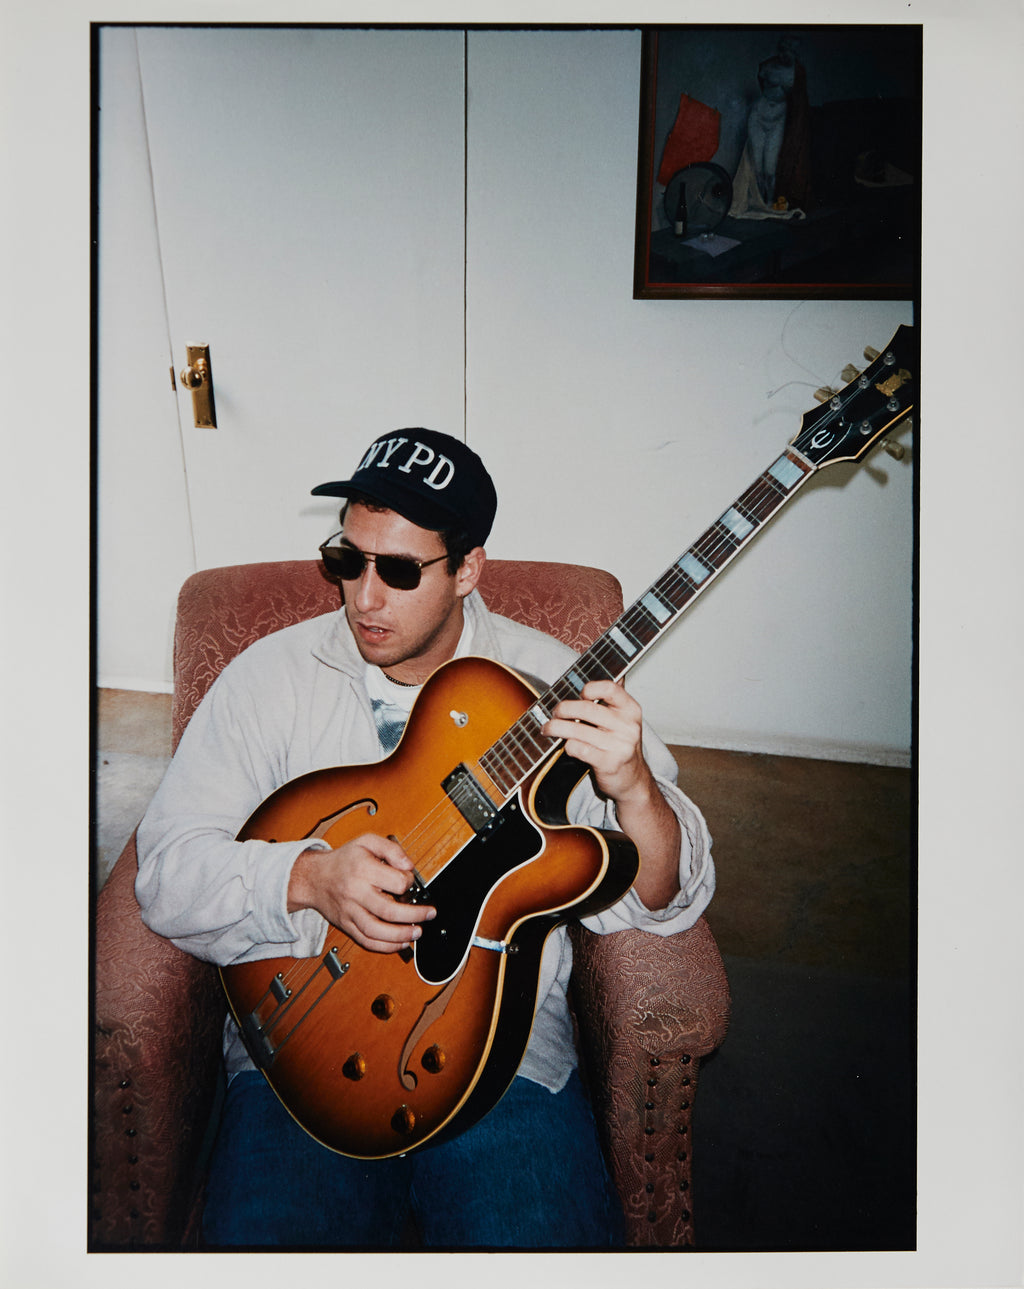 Adam Sandler playing an Epiphone guitar - Original Artist Print by Dewey Nicks